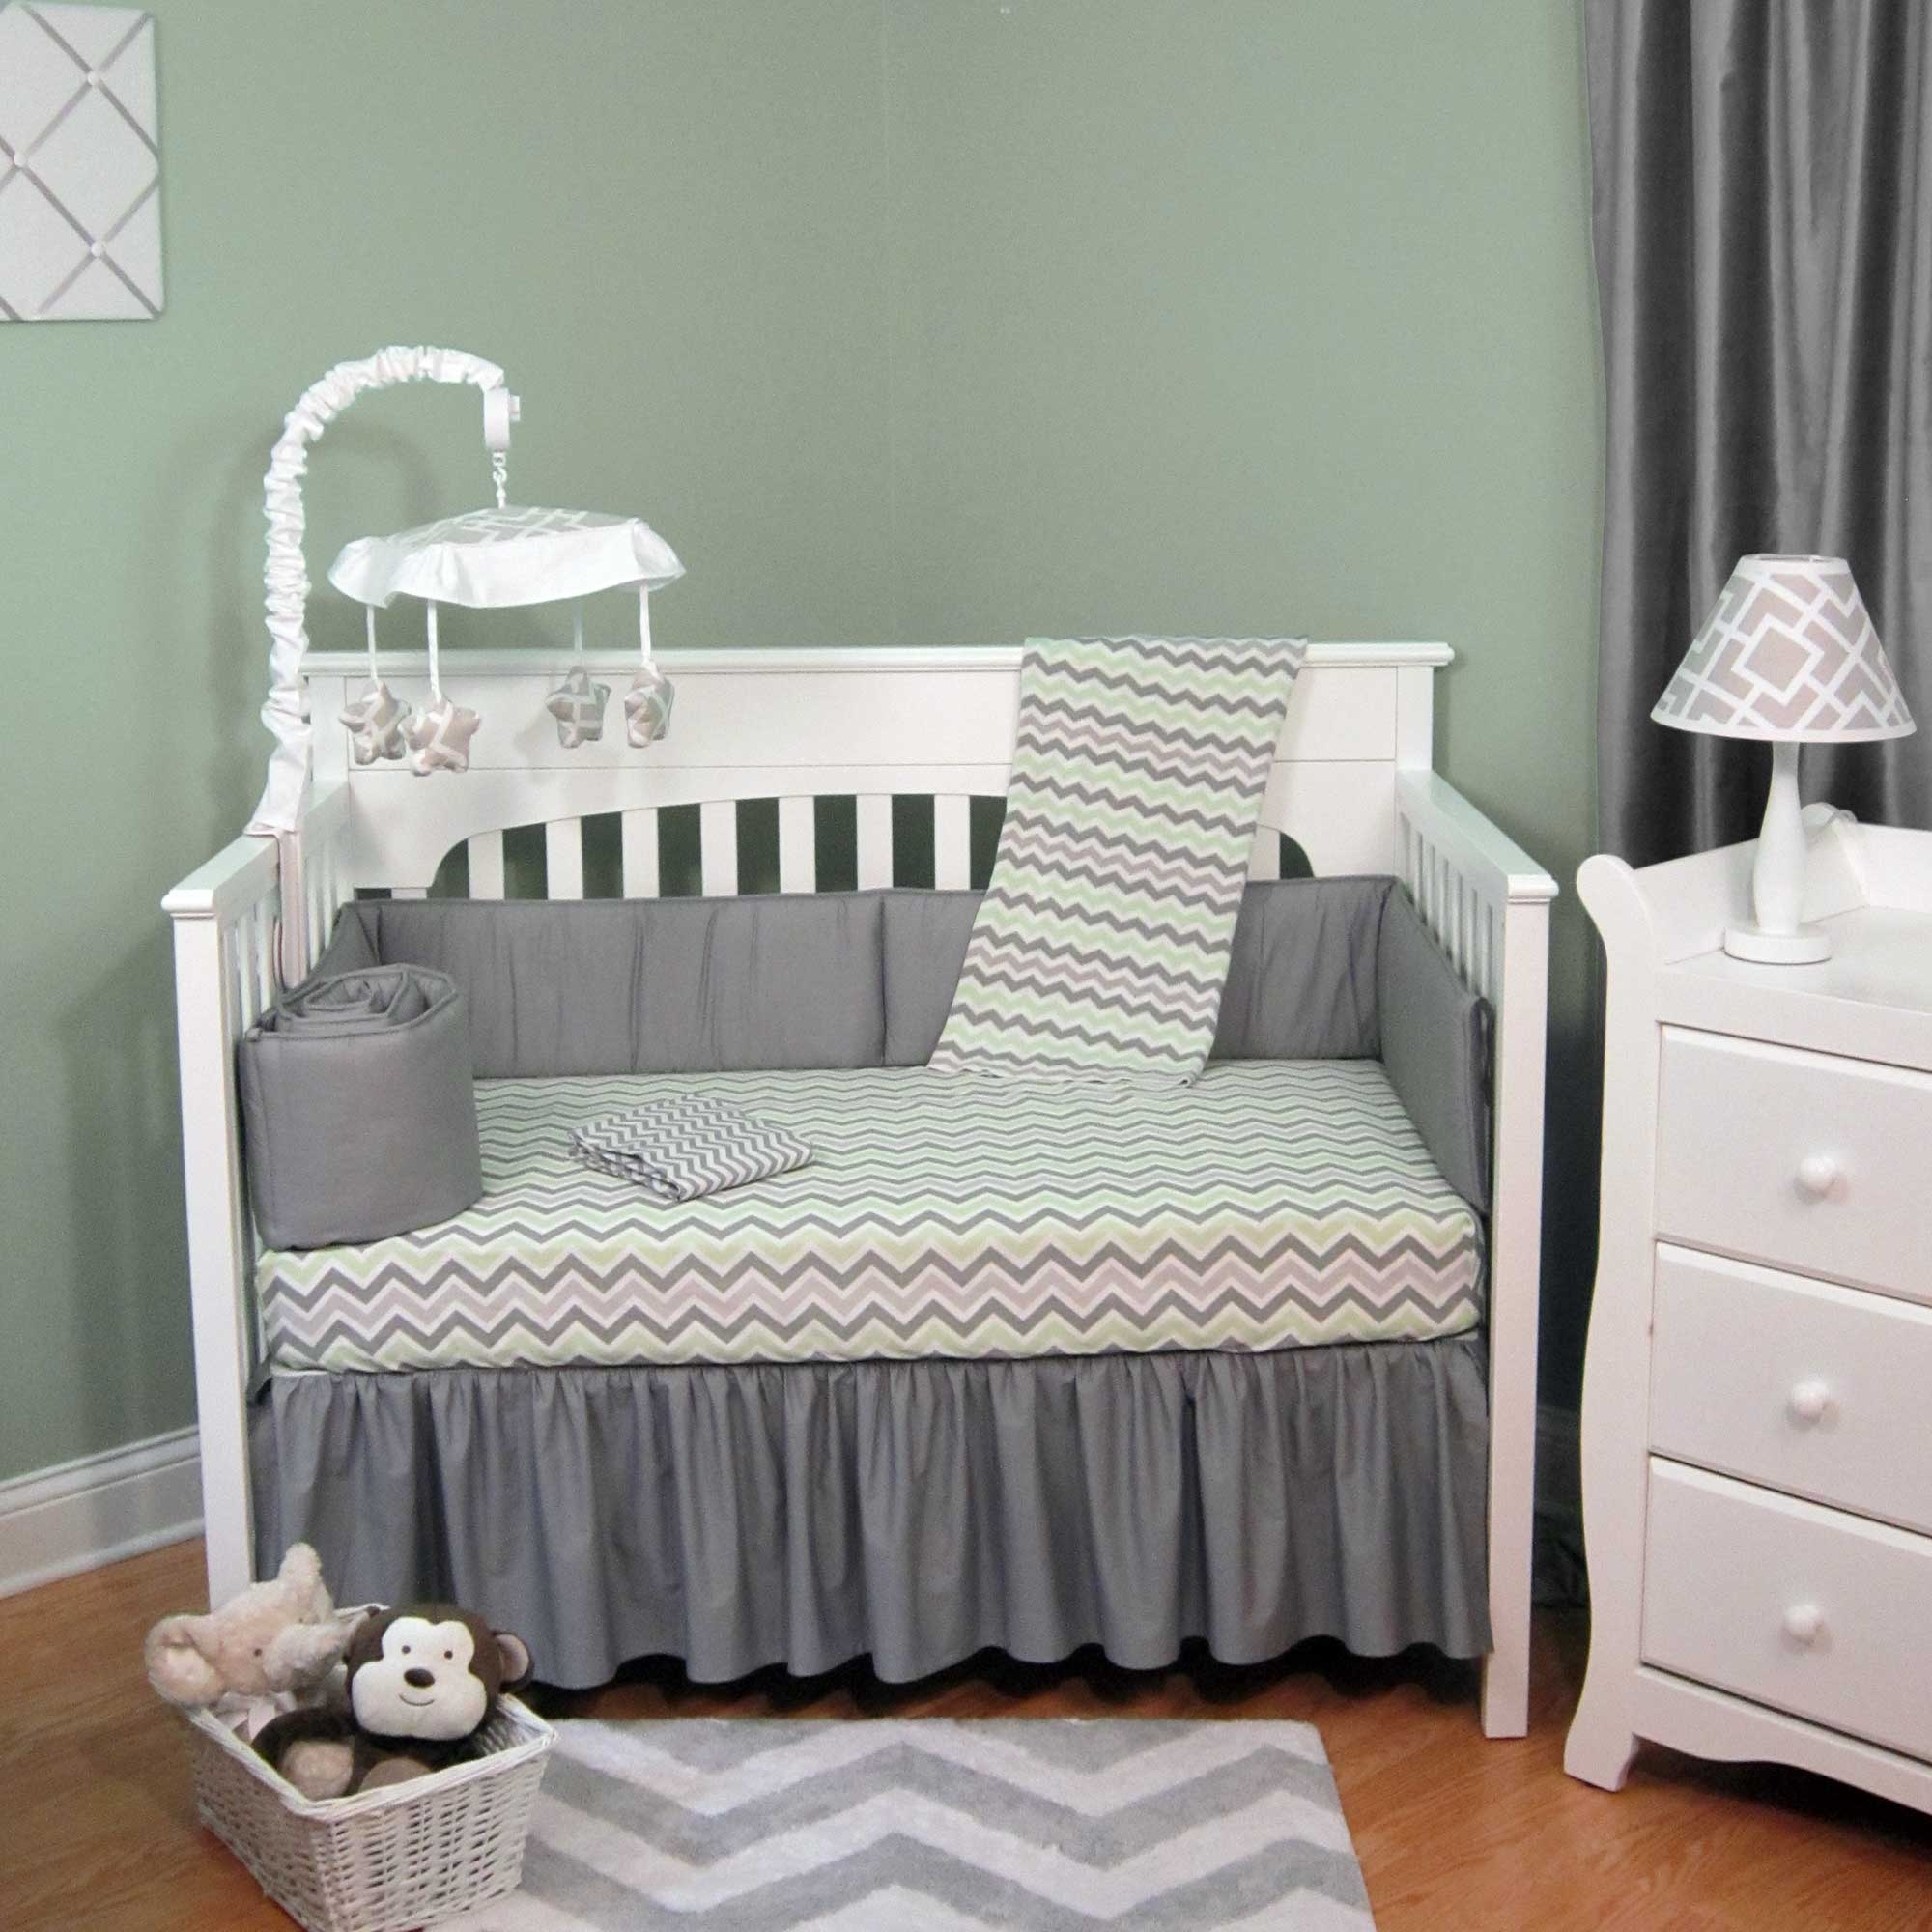 Chevron Zig Zag Pink and Gray with Dots 5 Piece Baby Crib Bedding Set with Bumper